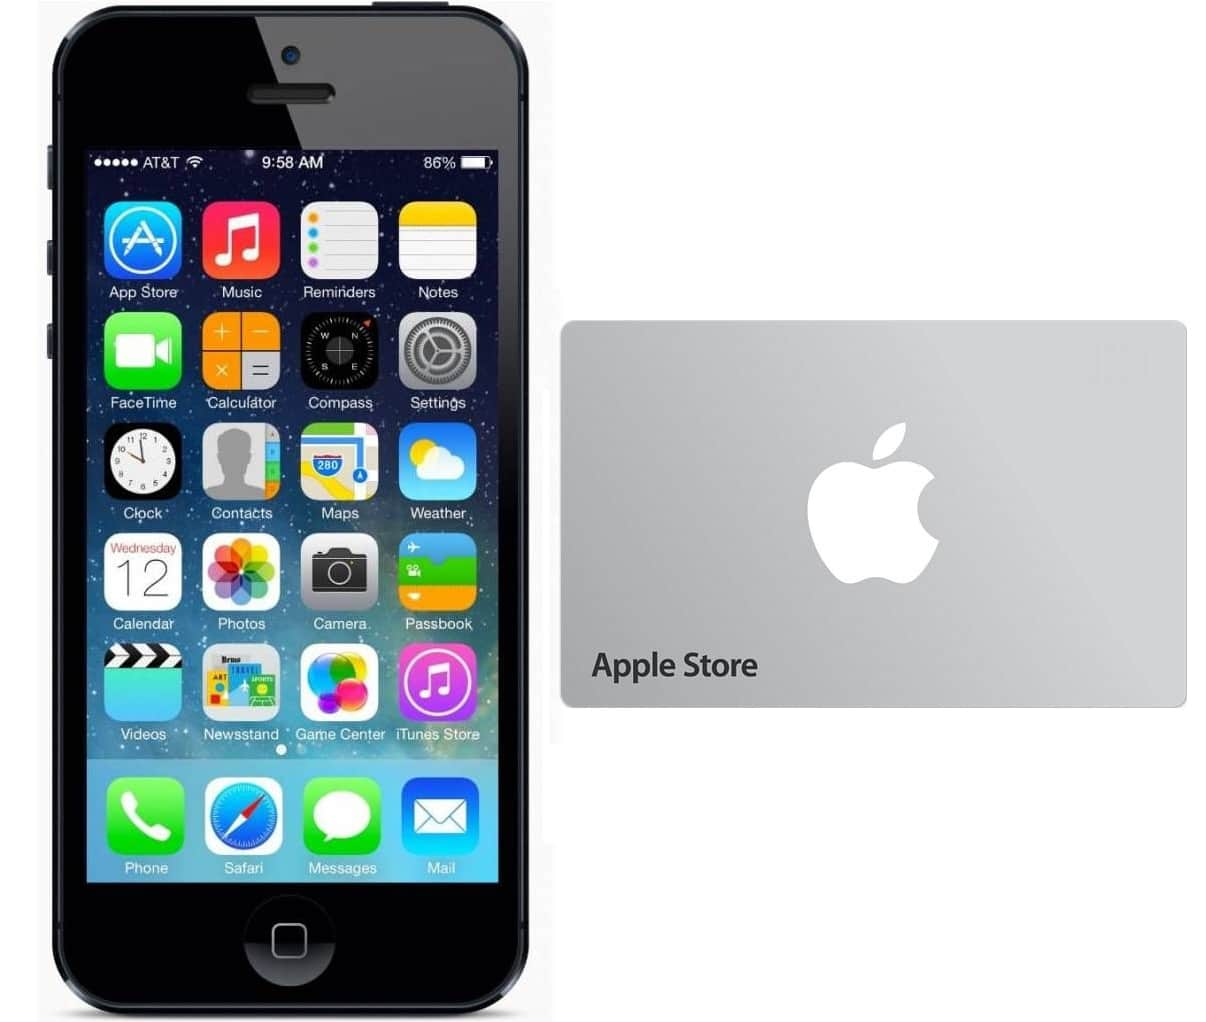 Trade-In Apple iPhone 4s or Higher, Receive Apple Gift Card Worth  Up To $300